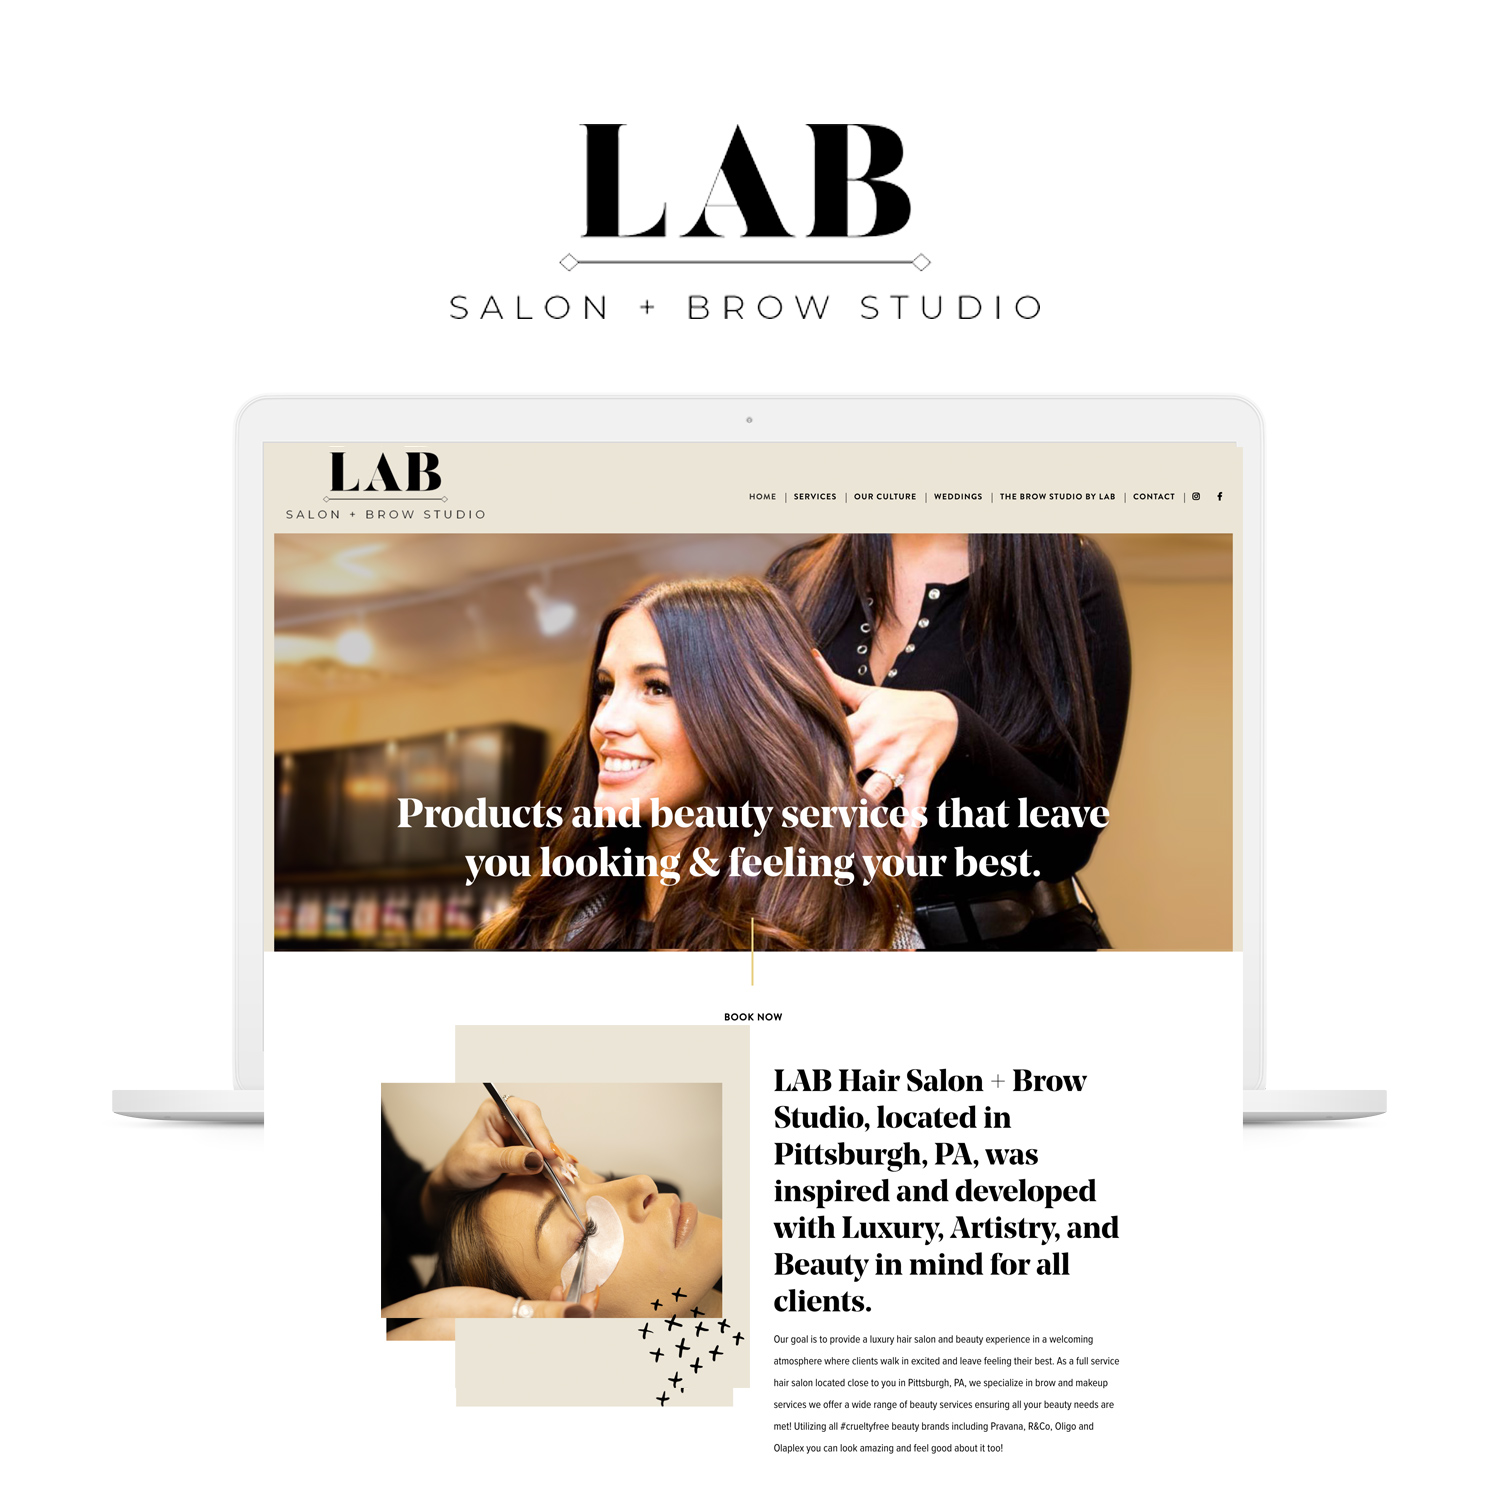 lab-salon-website-design